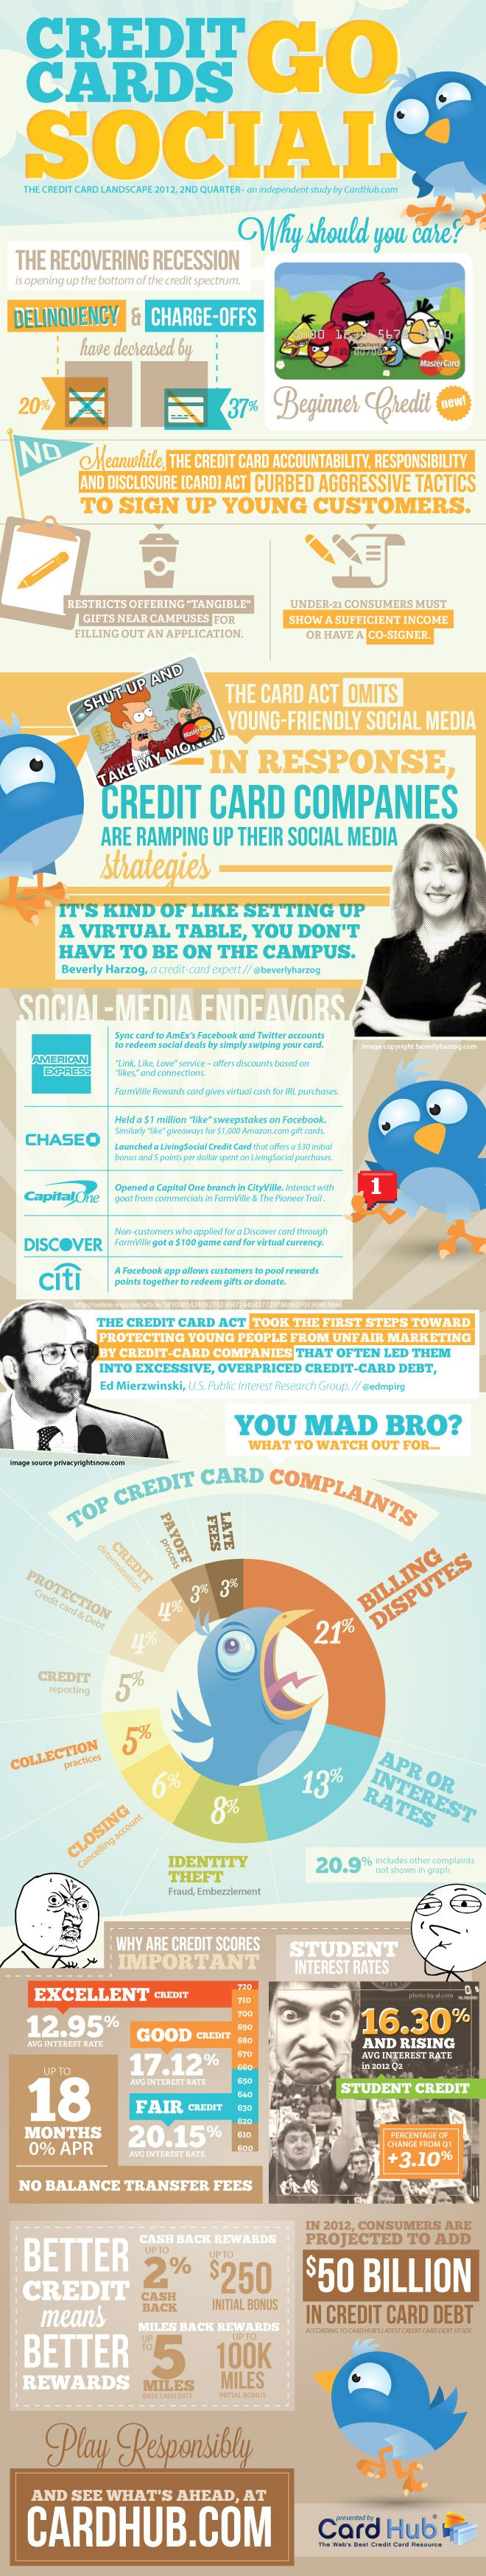 How credit card companies lure customers on social media. #creditcards #banking #social